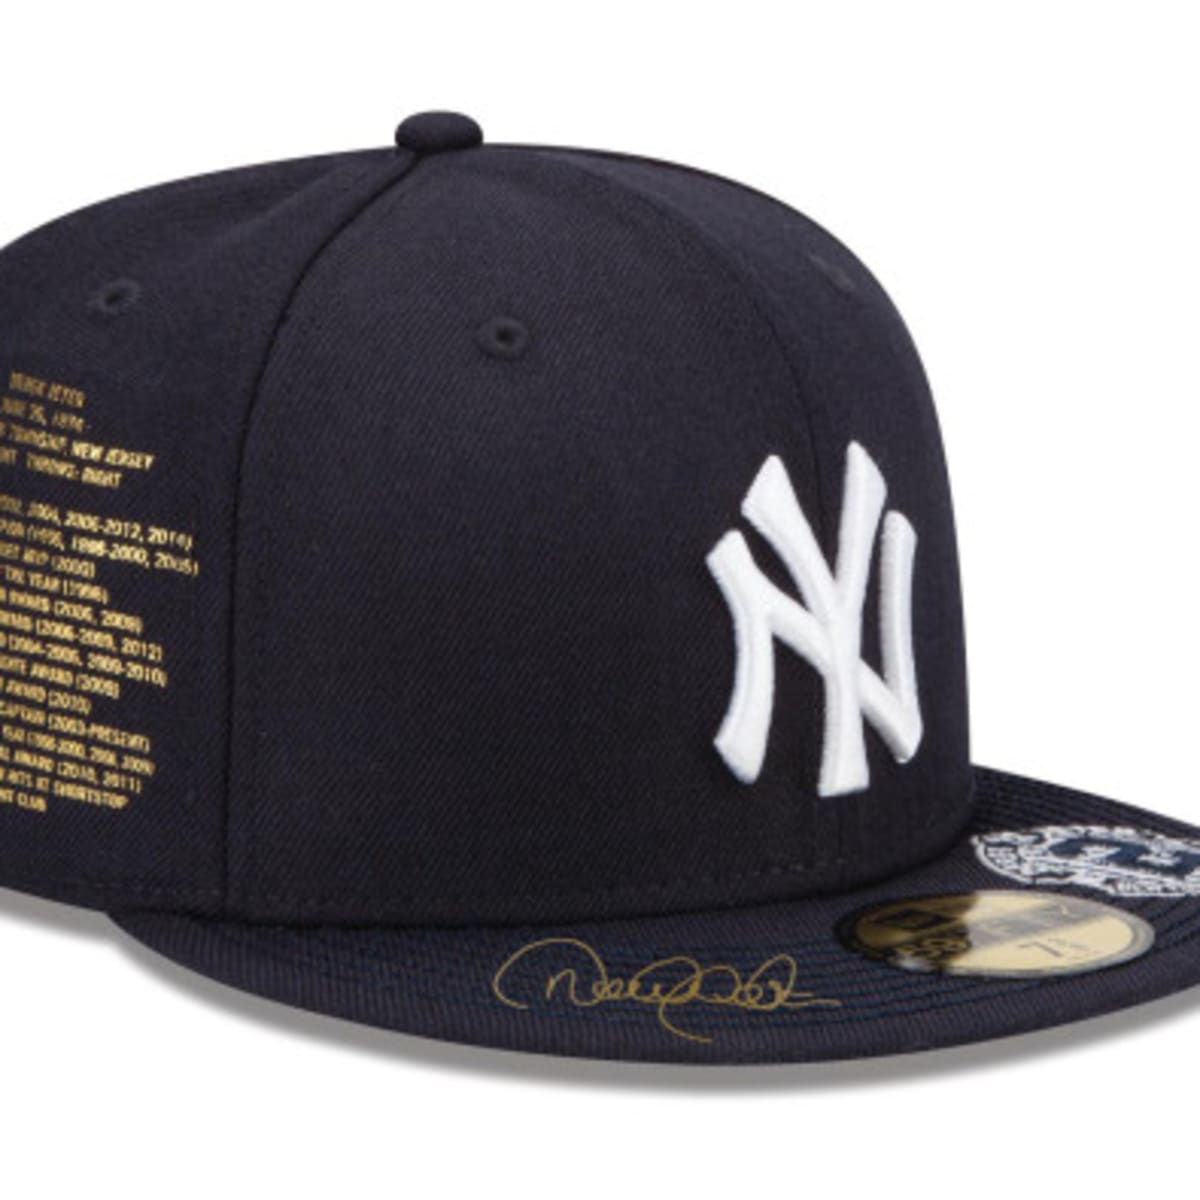 New Era For Atmos Nyc Ny Yankees Derek Jeter Fitted Hat Freshness Mag